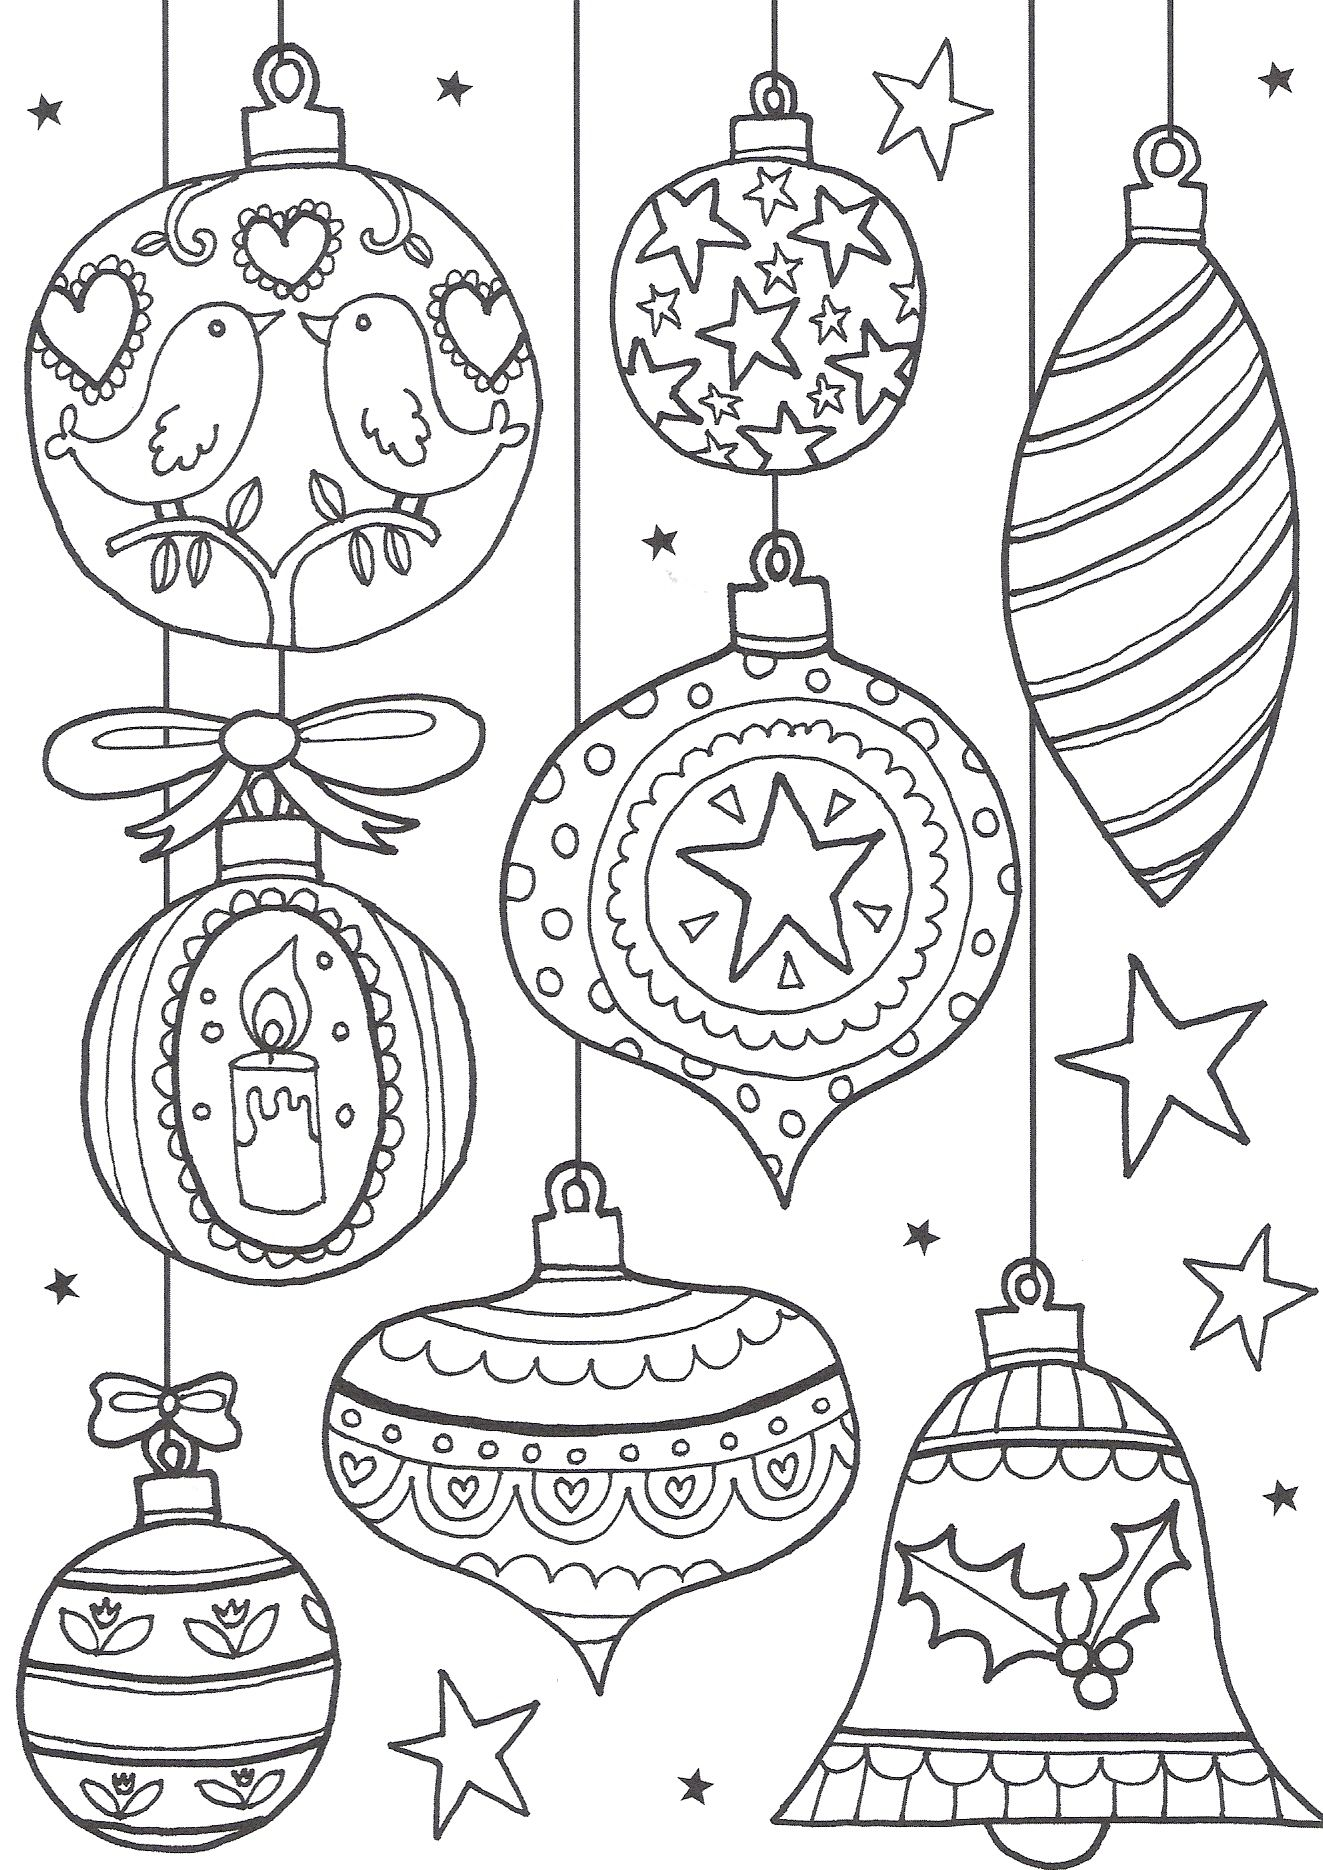 free christmas coloring pages to print for adults Free Christmas Colouring Pages for Adults – The Ultimate Roundup  free christmas coloring pages to print for adults